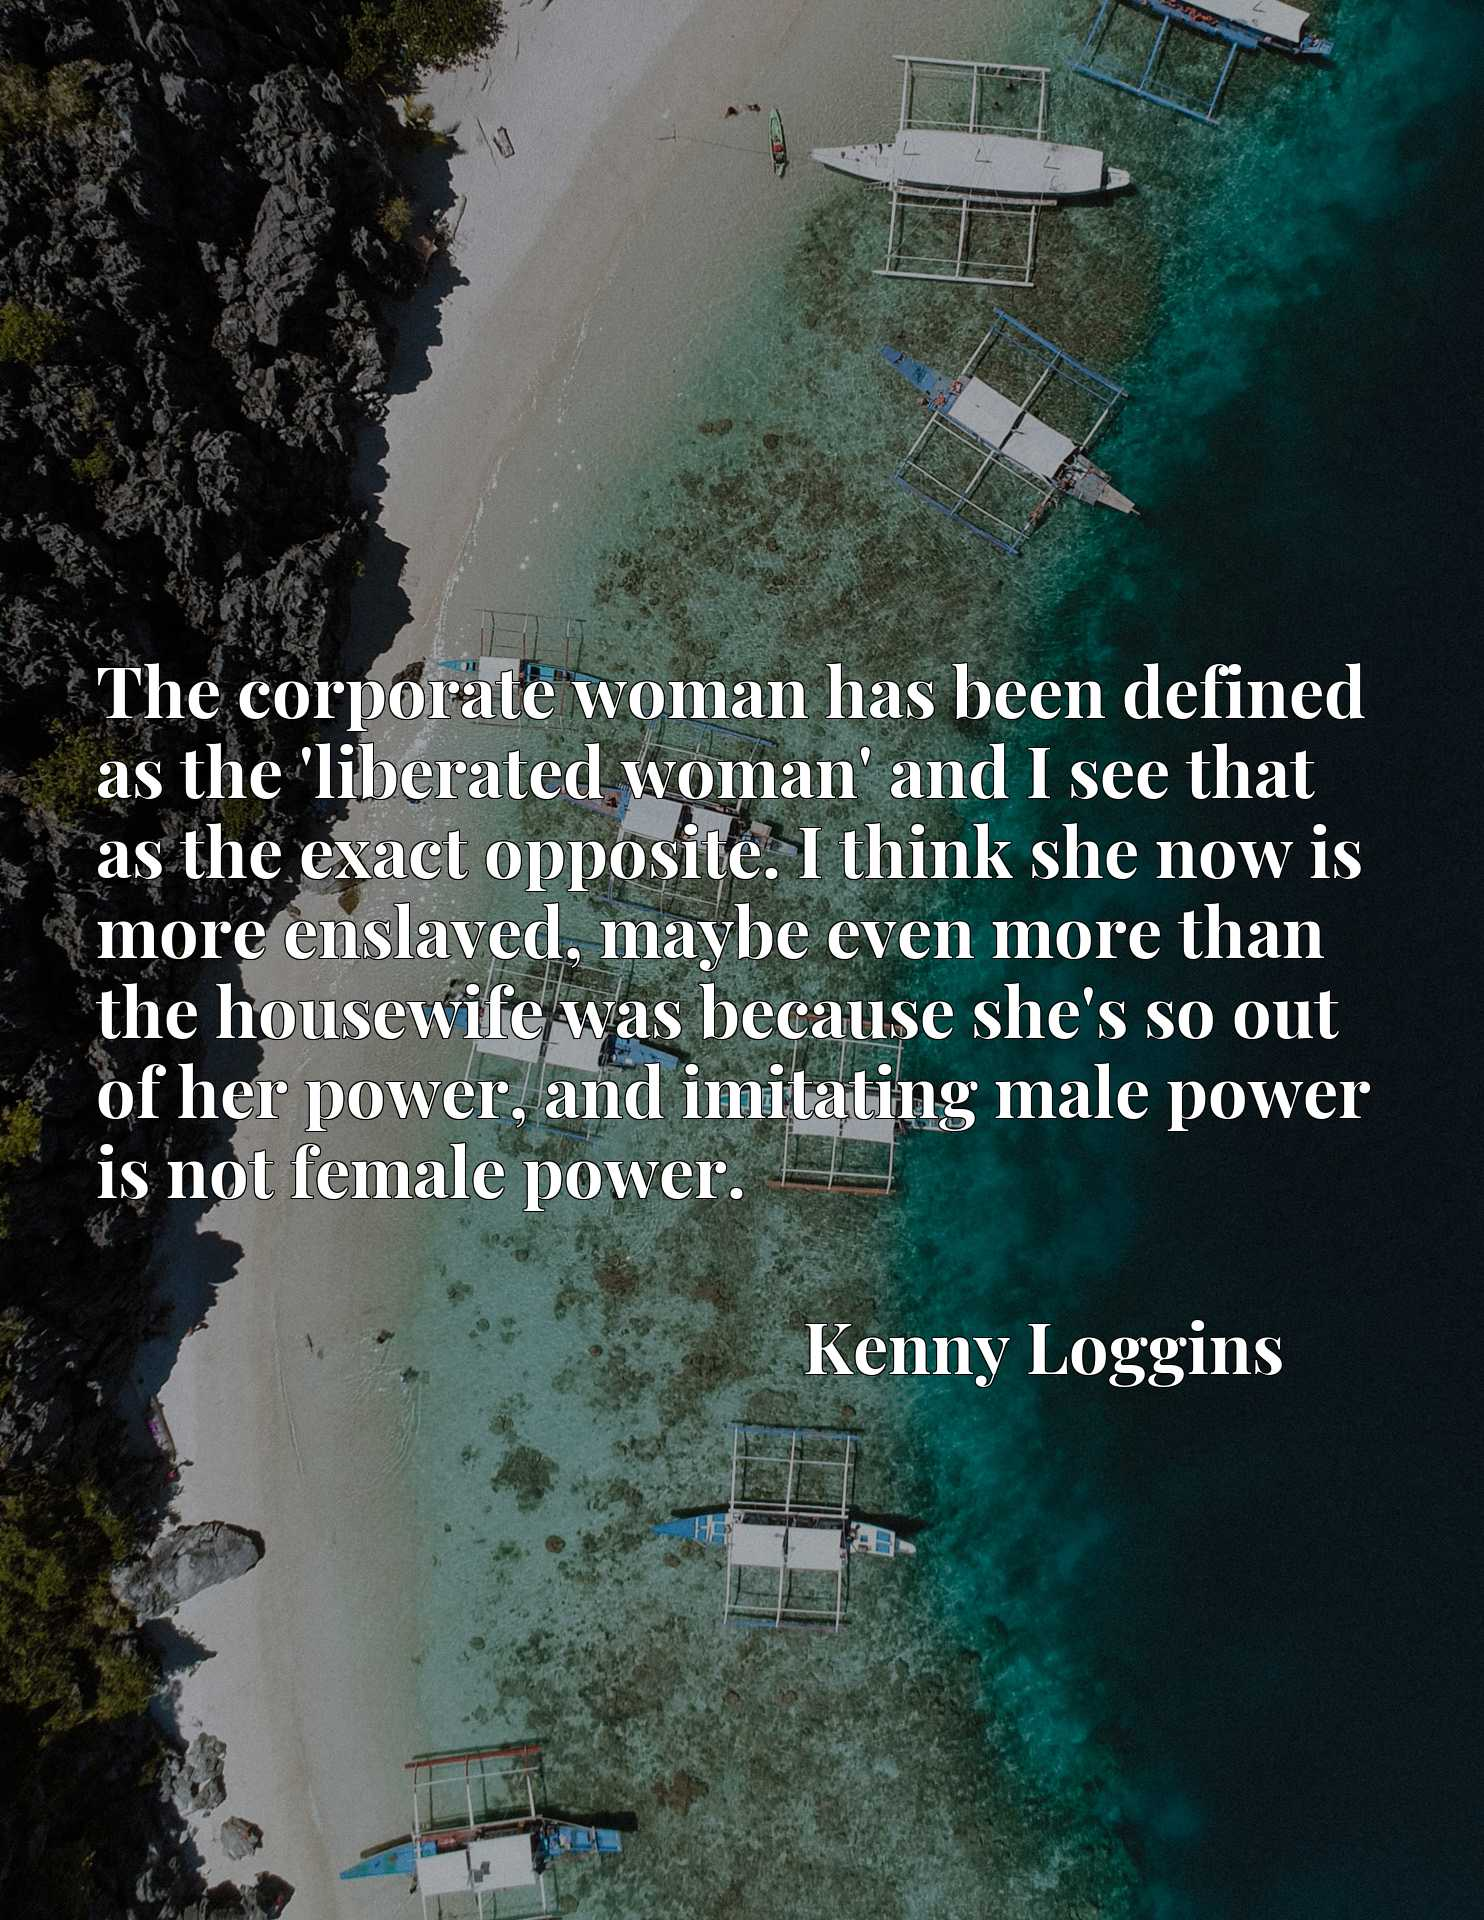 The corporate woman has been defined as the 'liberated woman' and I see that as the exact opposite. I think she now is more enslaved, maybe even more than the housewife was because she's so out of her power, and imitating male power is not female power.